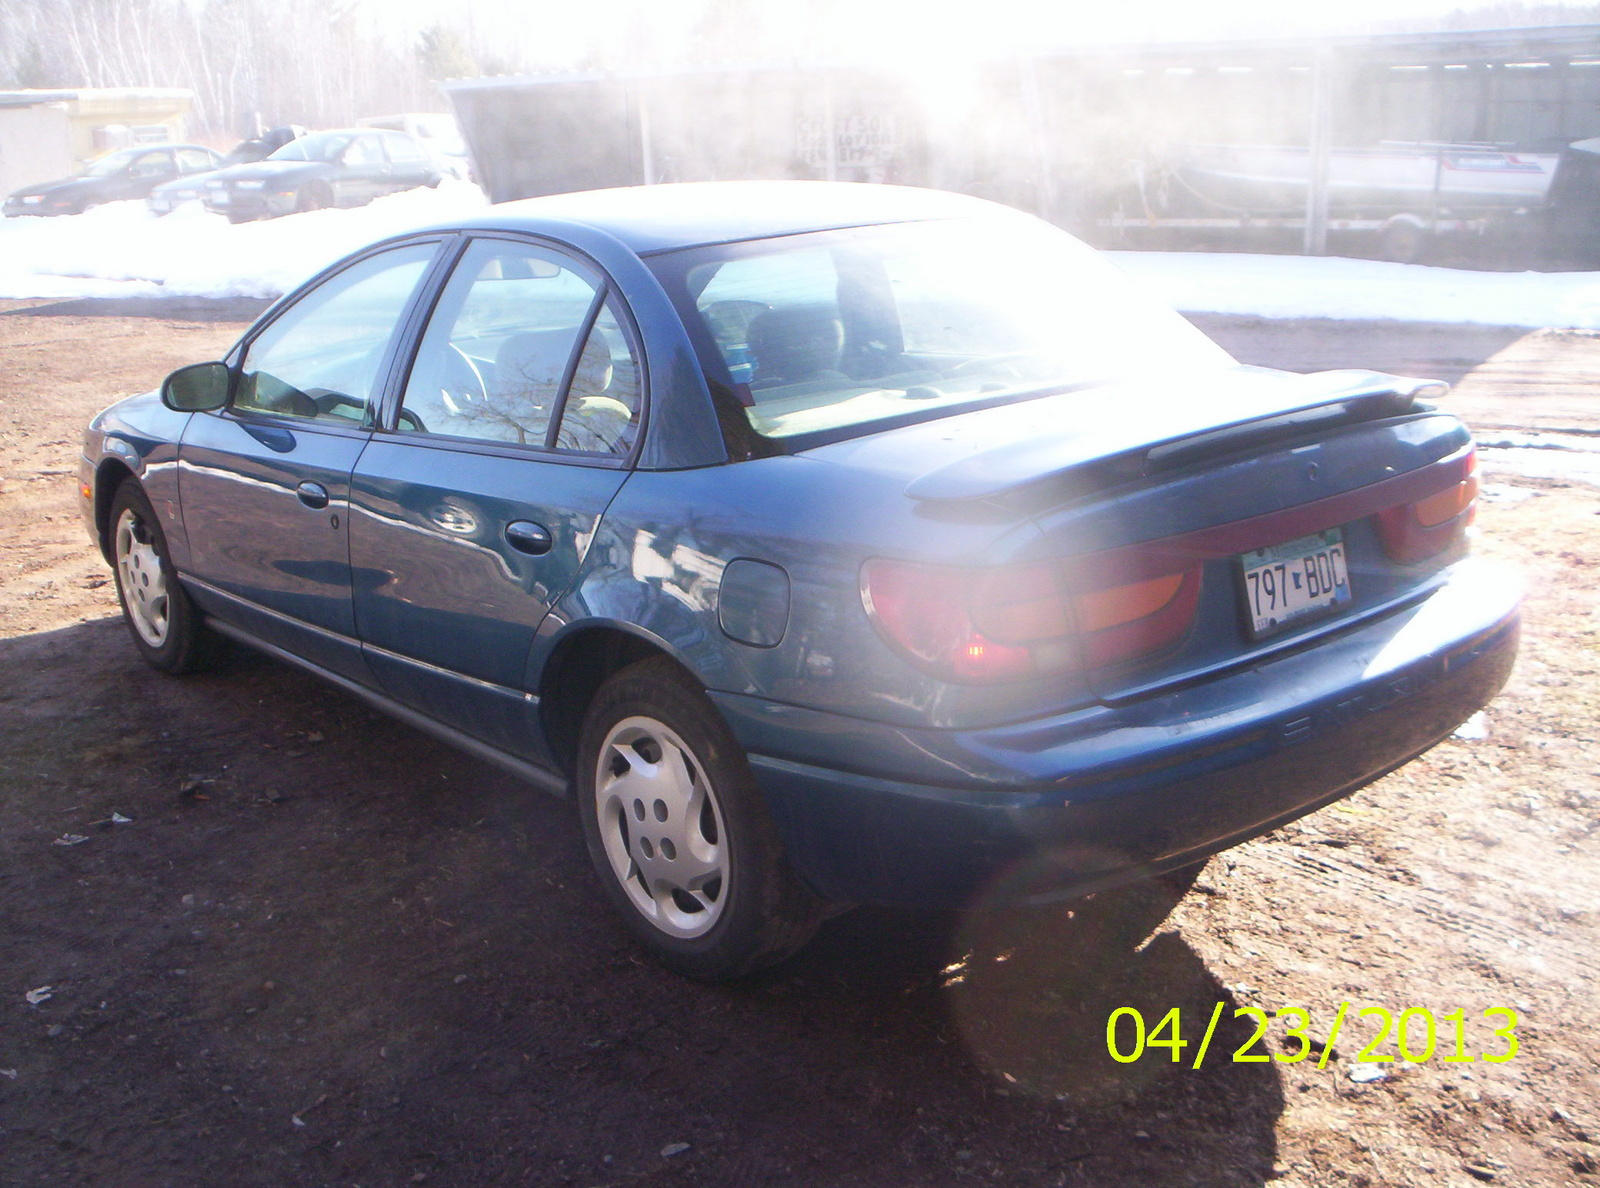 Picture of 2002 Saturn S-Series 4 Dr SL2 Sedan, exterior